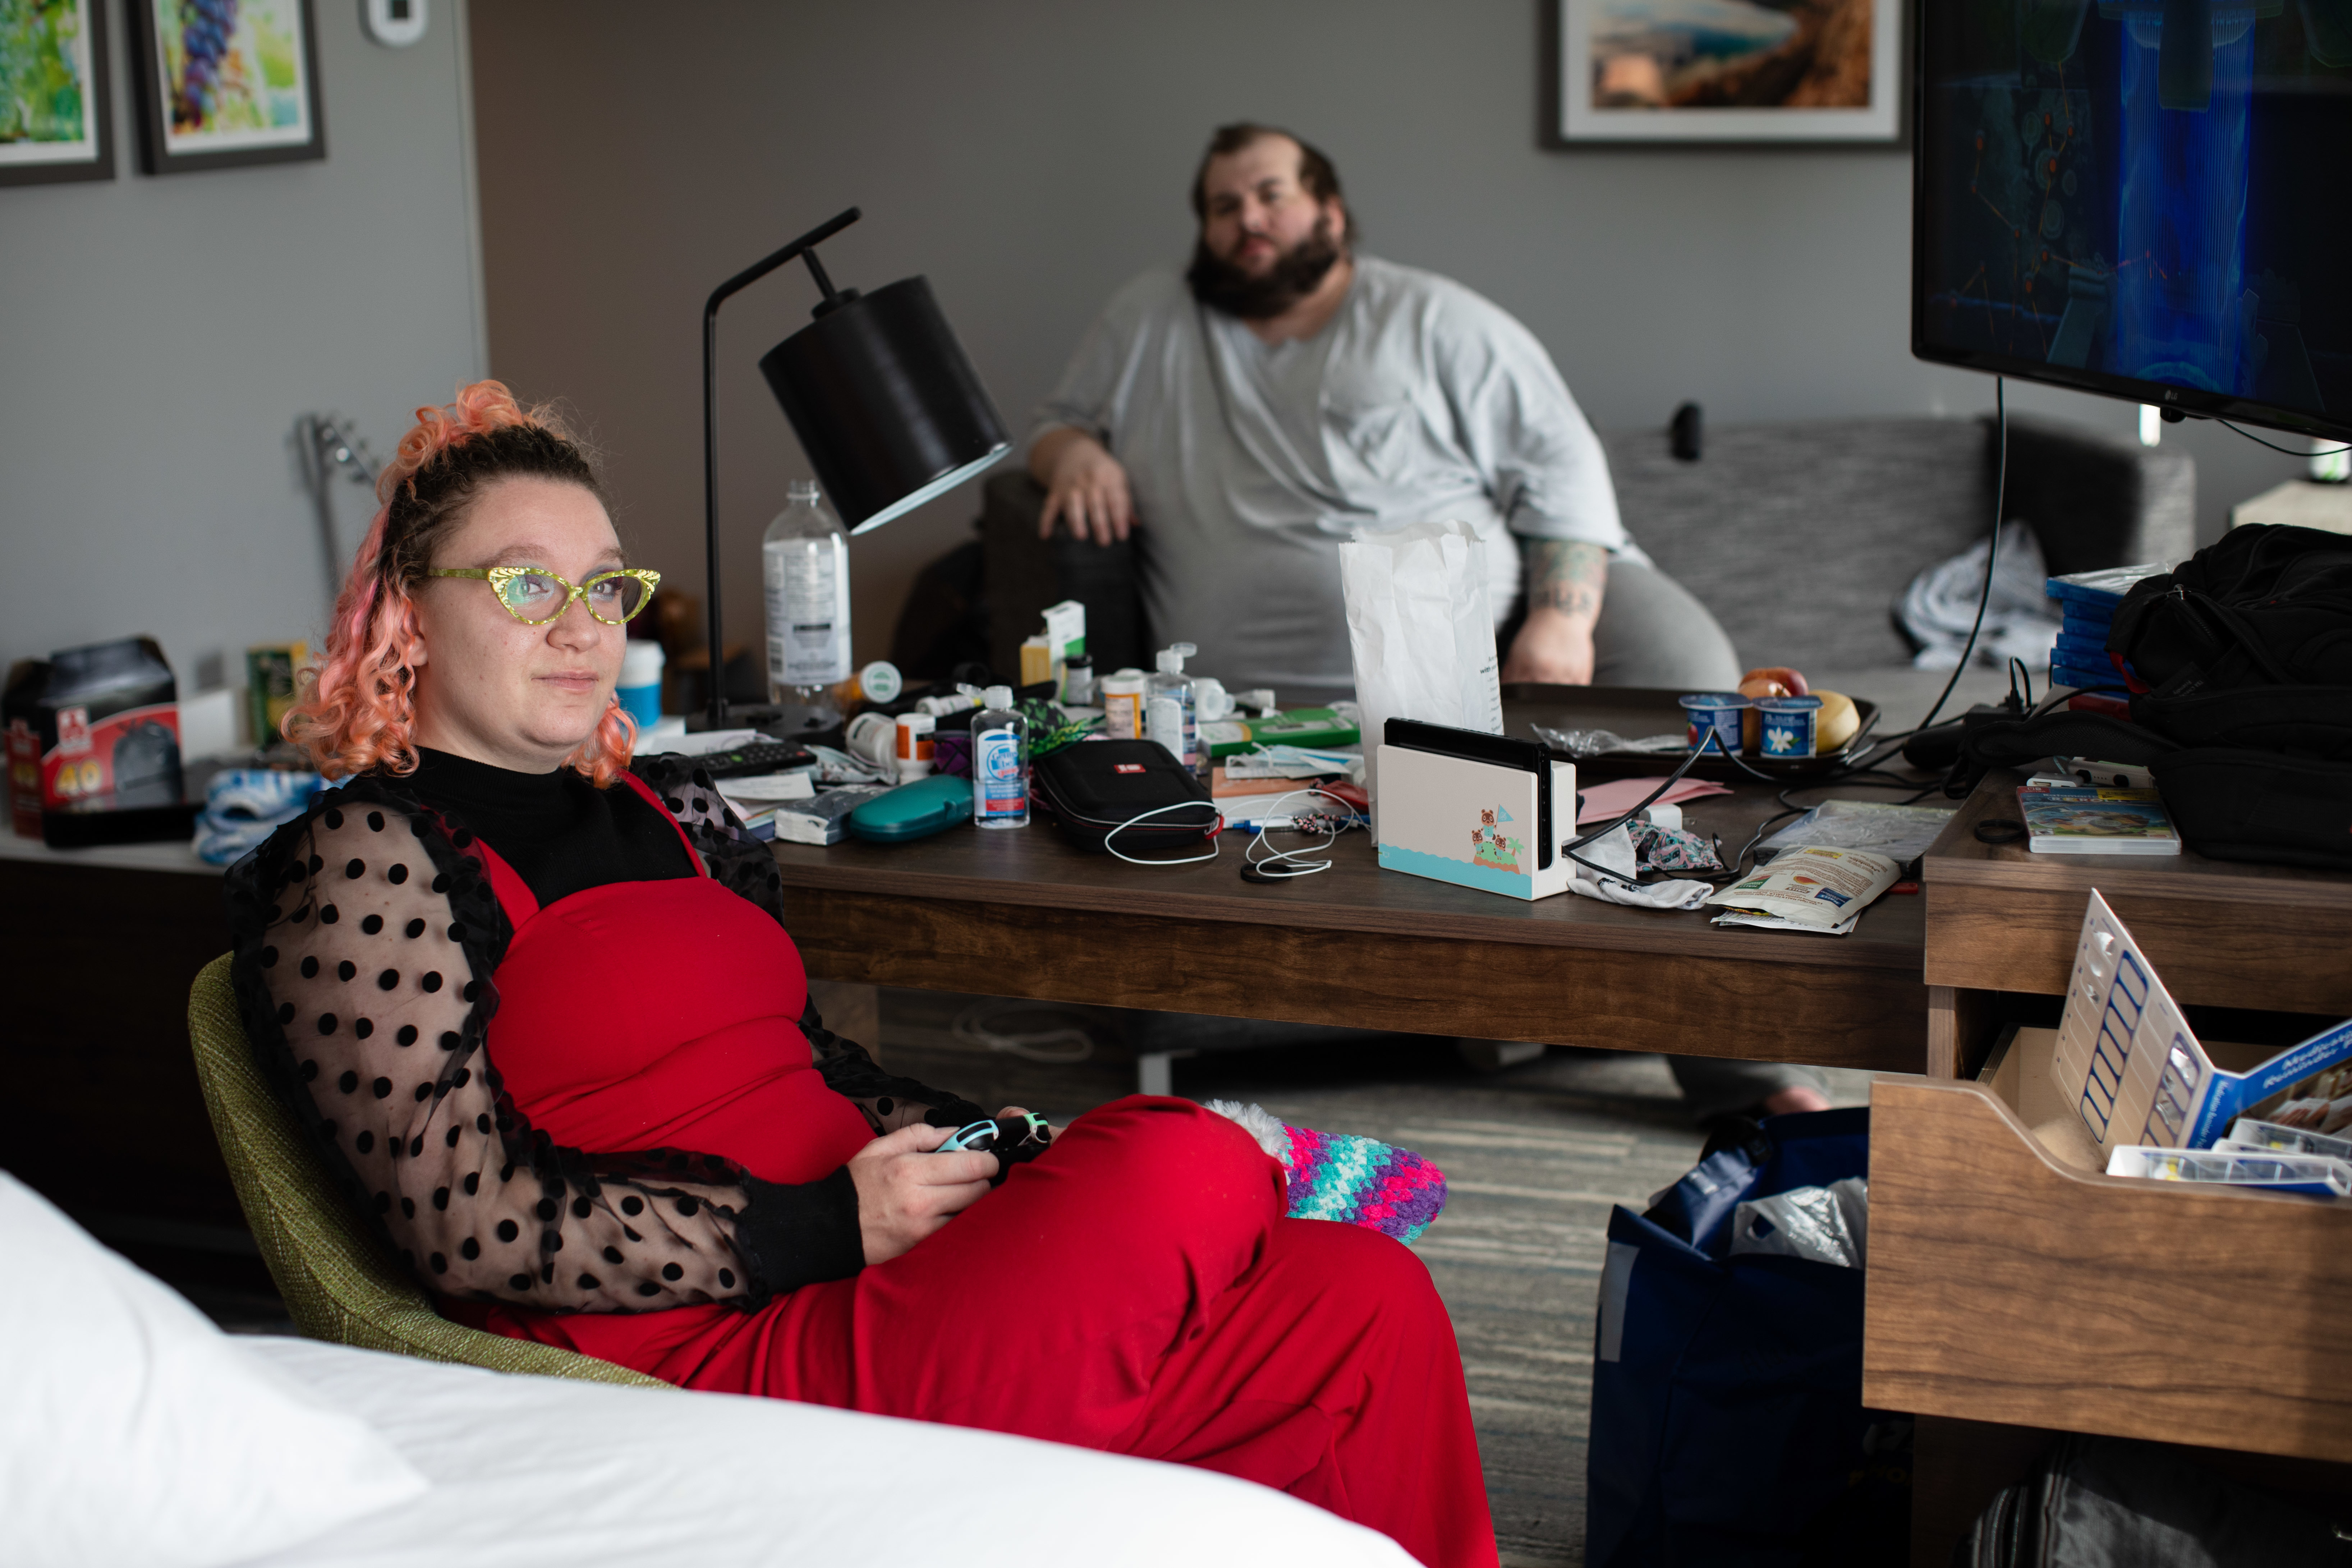 Wildfire evacuees Katja Burnett, left, and her husband, Al Peterson, are pictured inside a hotel room in Kelowna, B.C., on Sept. 2. (Maggie MacPherson/CBC)